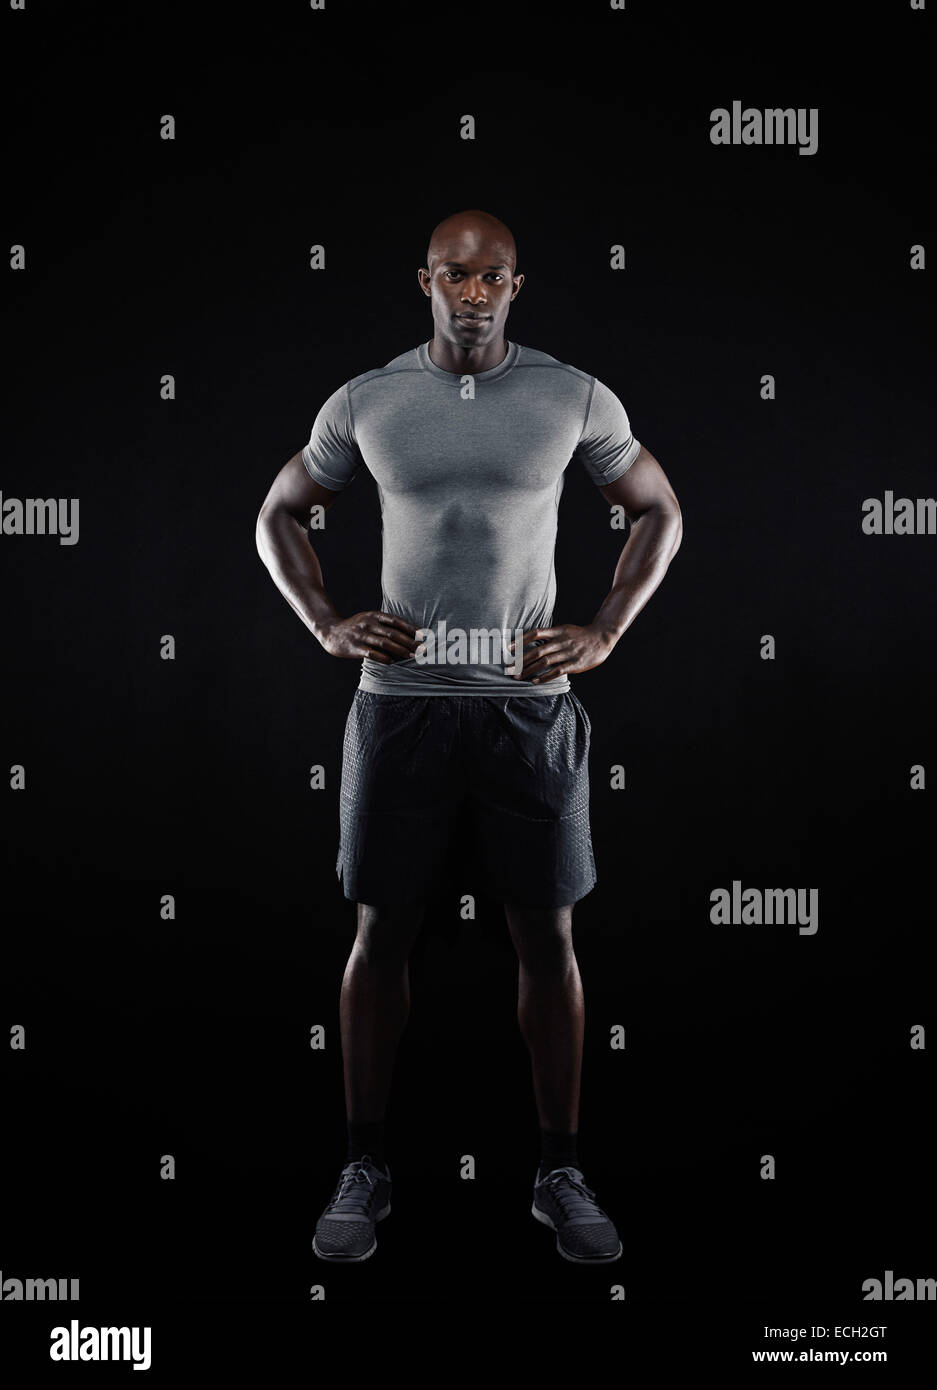 Full length portrait of muscular young man in sportswear looking at camera against black background. Strong African - Stock Image